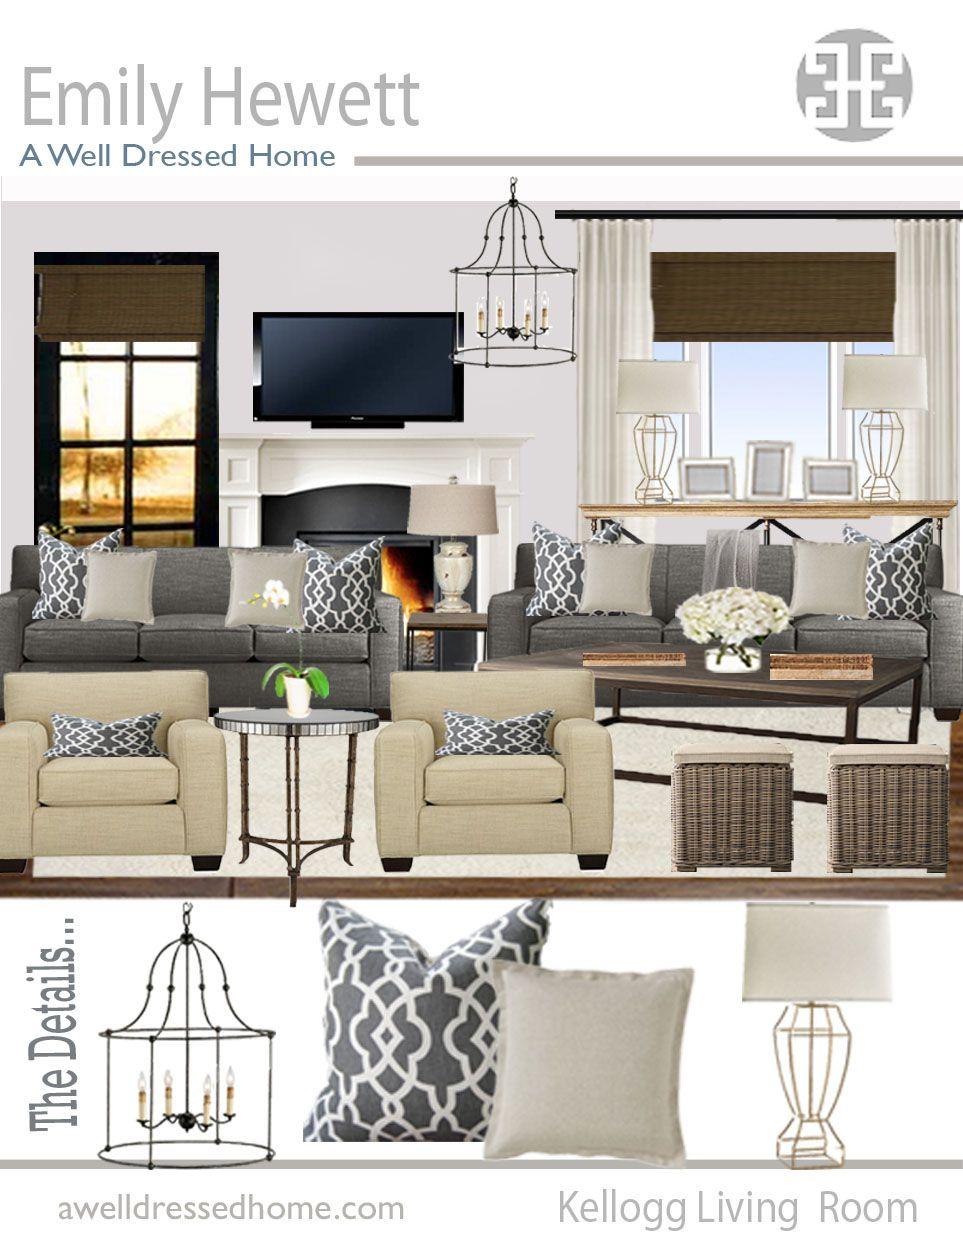 Design A Living Room Online For Free Unique Awdh Odb Kellogg Living Room Online Design Boardawdh  For The Design Inspiration